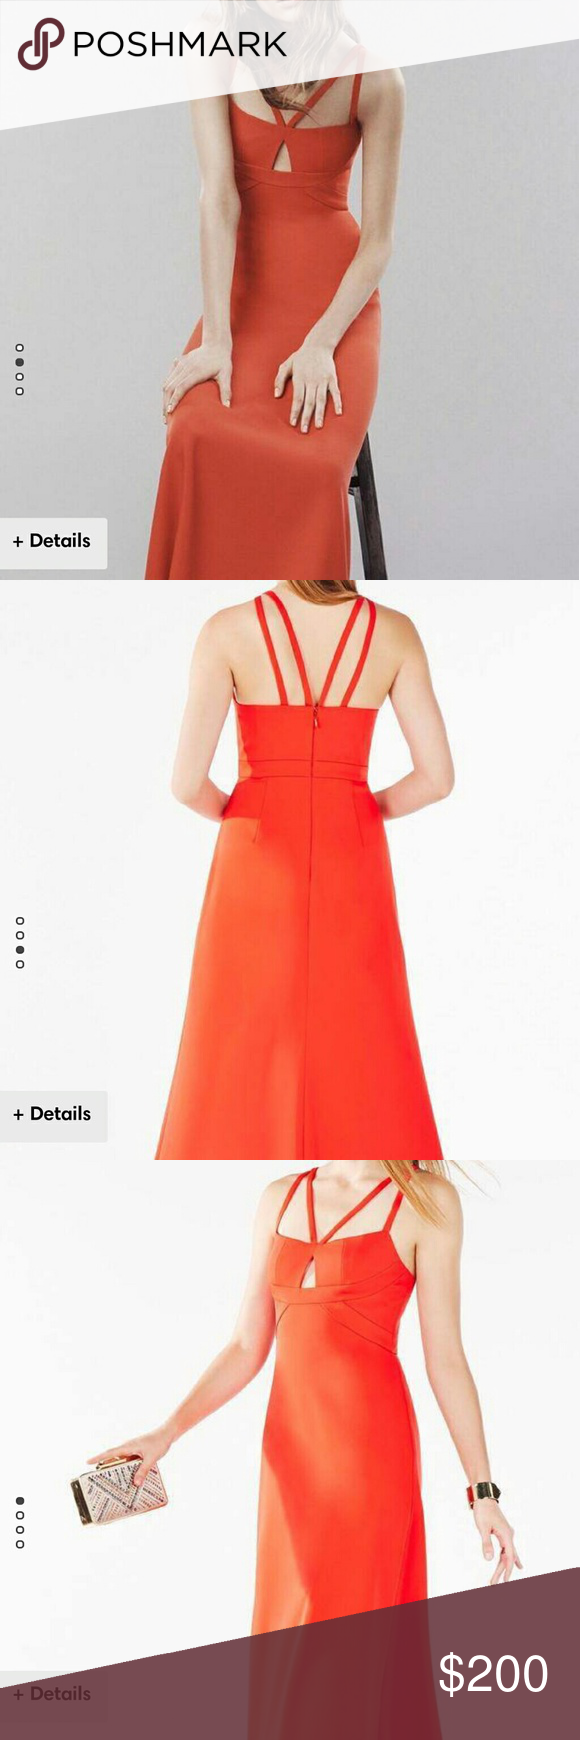 BCBG red/orange dress. Beautiful maxi dress, perfect for weddings , proms you neme it! Only used once for less than 4 hours for my friend's wedding. It already went to the dry cleaner! I accept reasonable offers! BCBGMaxAzria Dresses Wedding